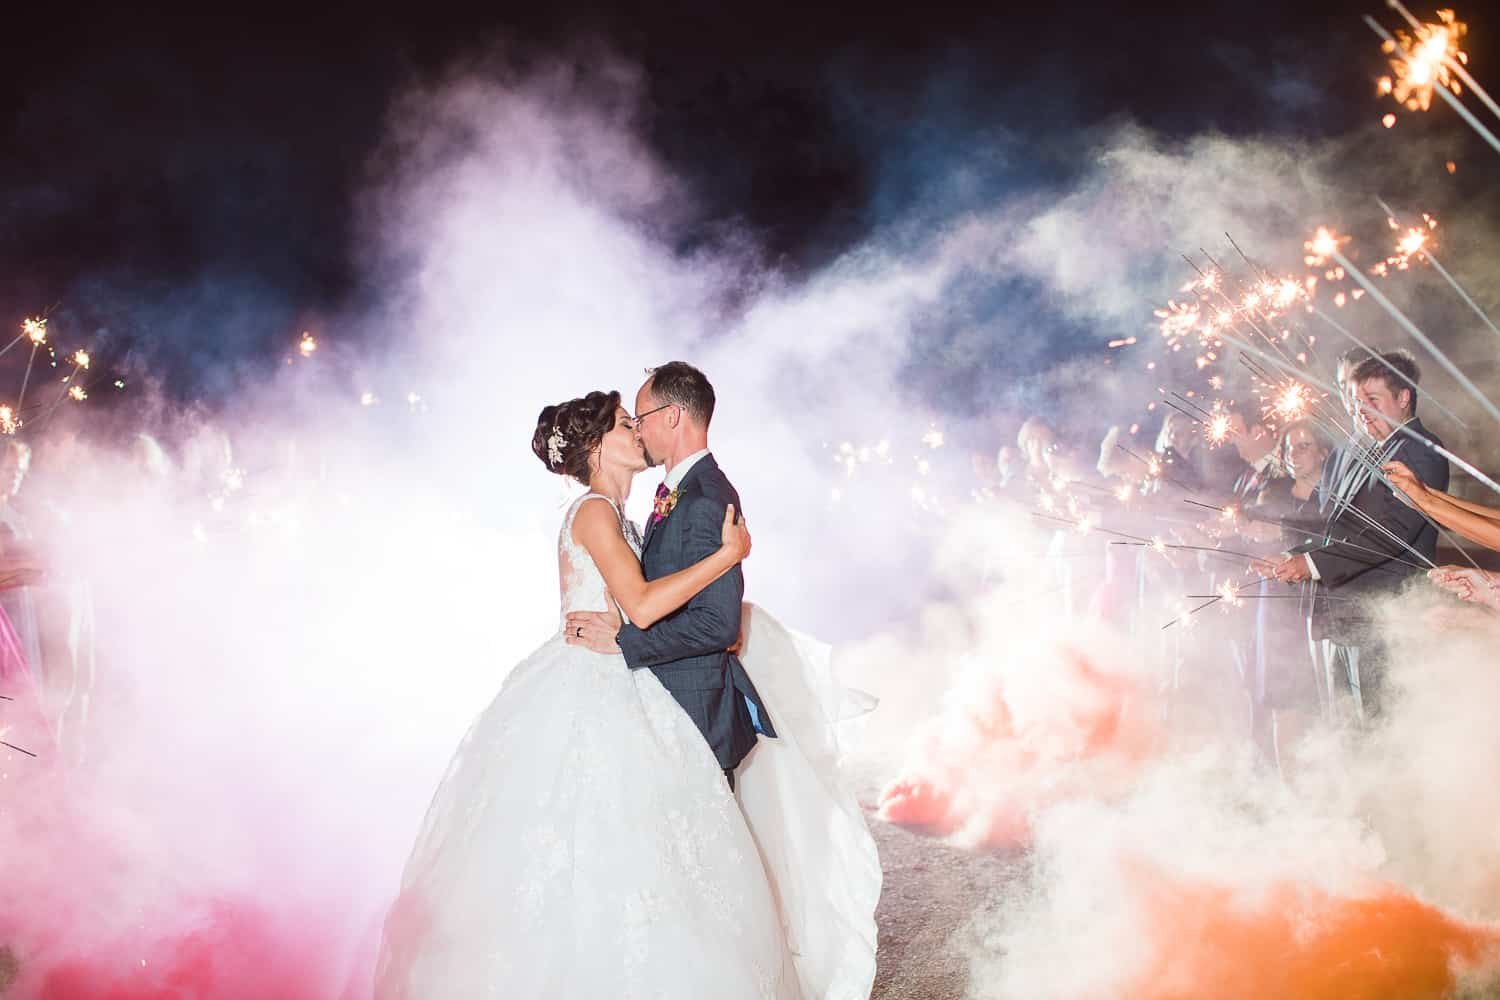 Smoke bomb wedding exit